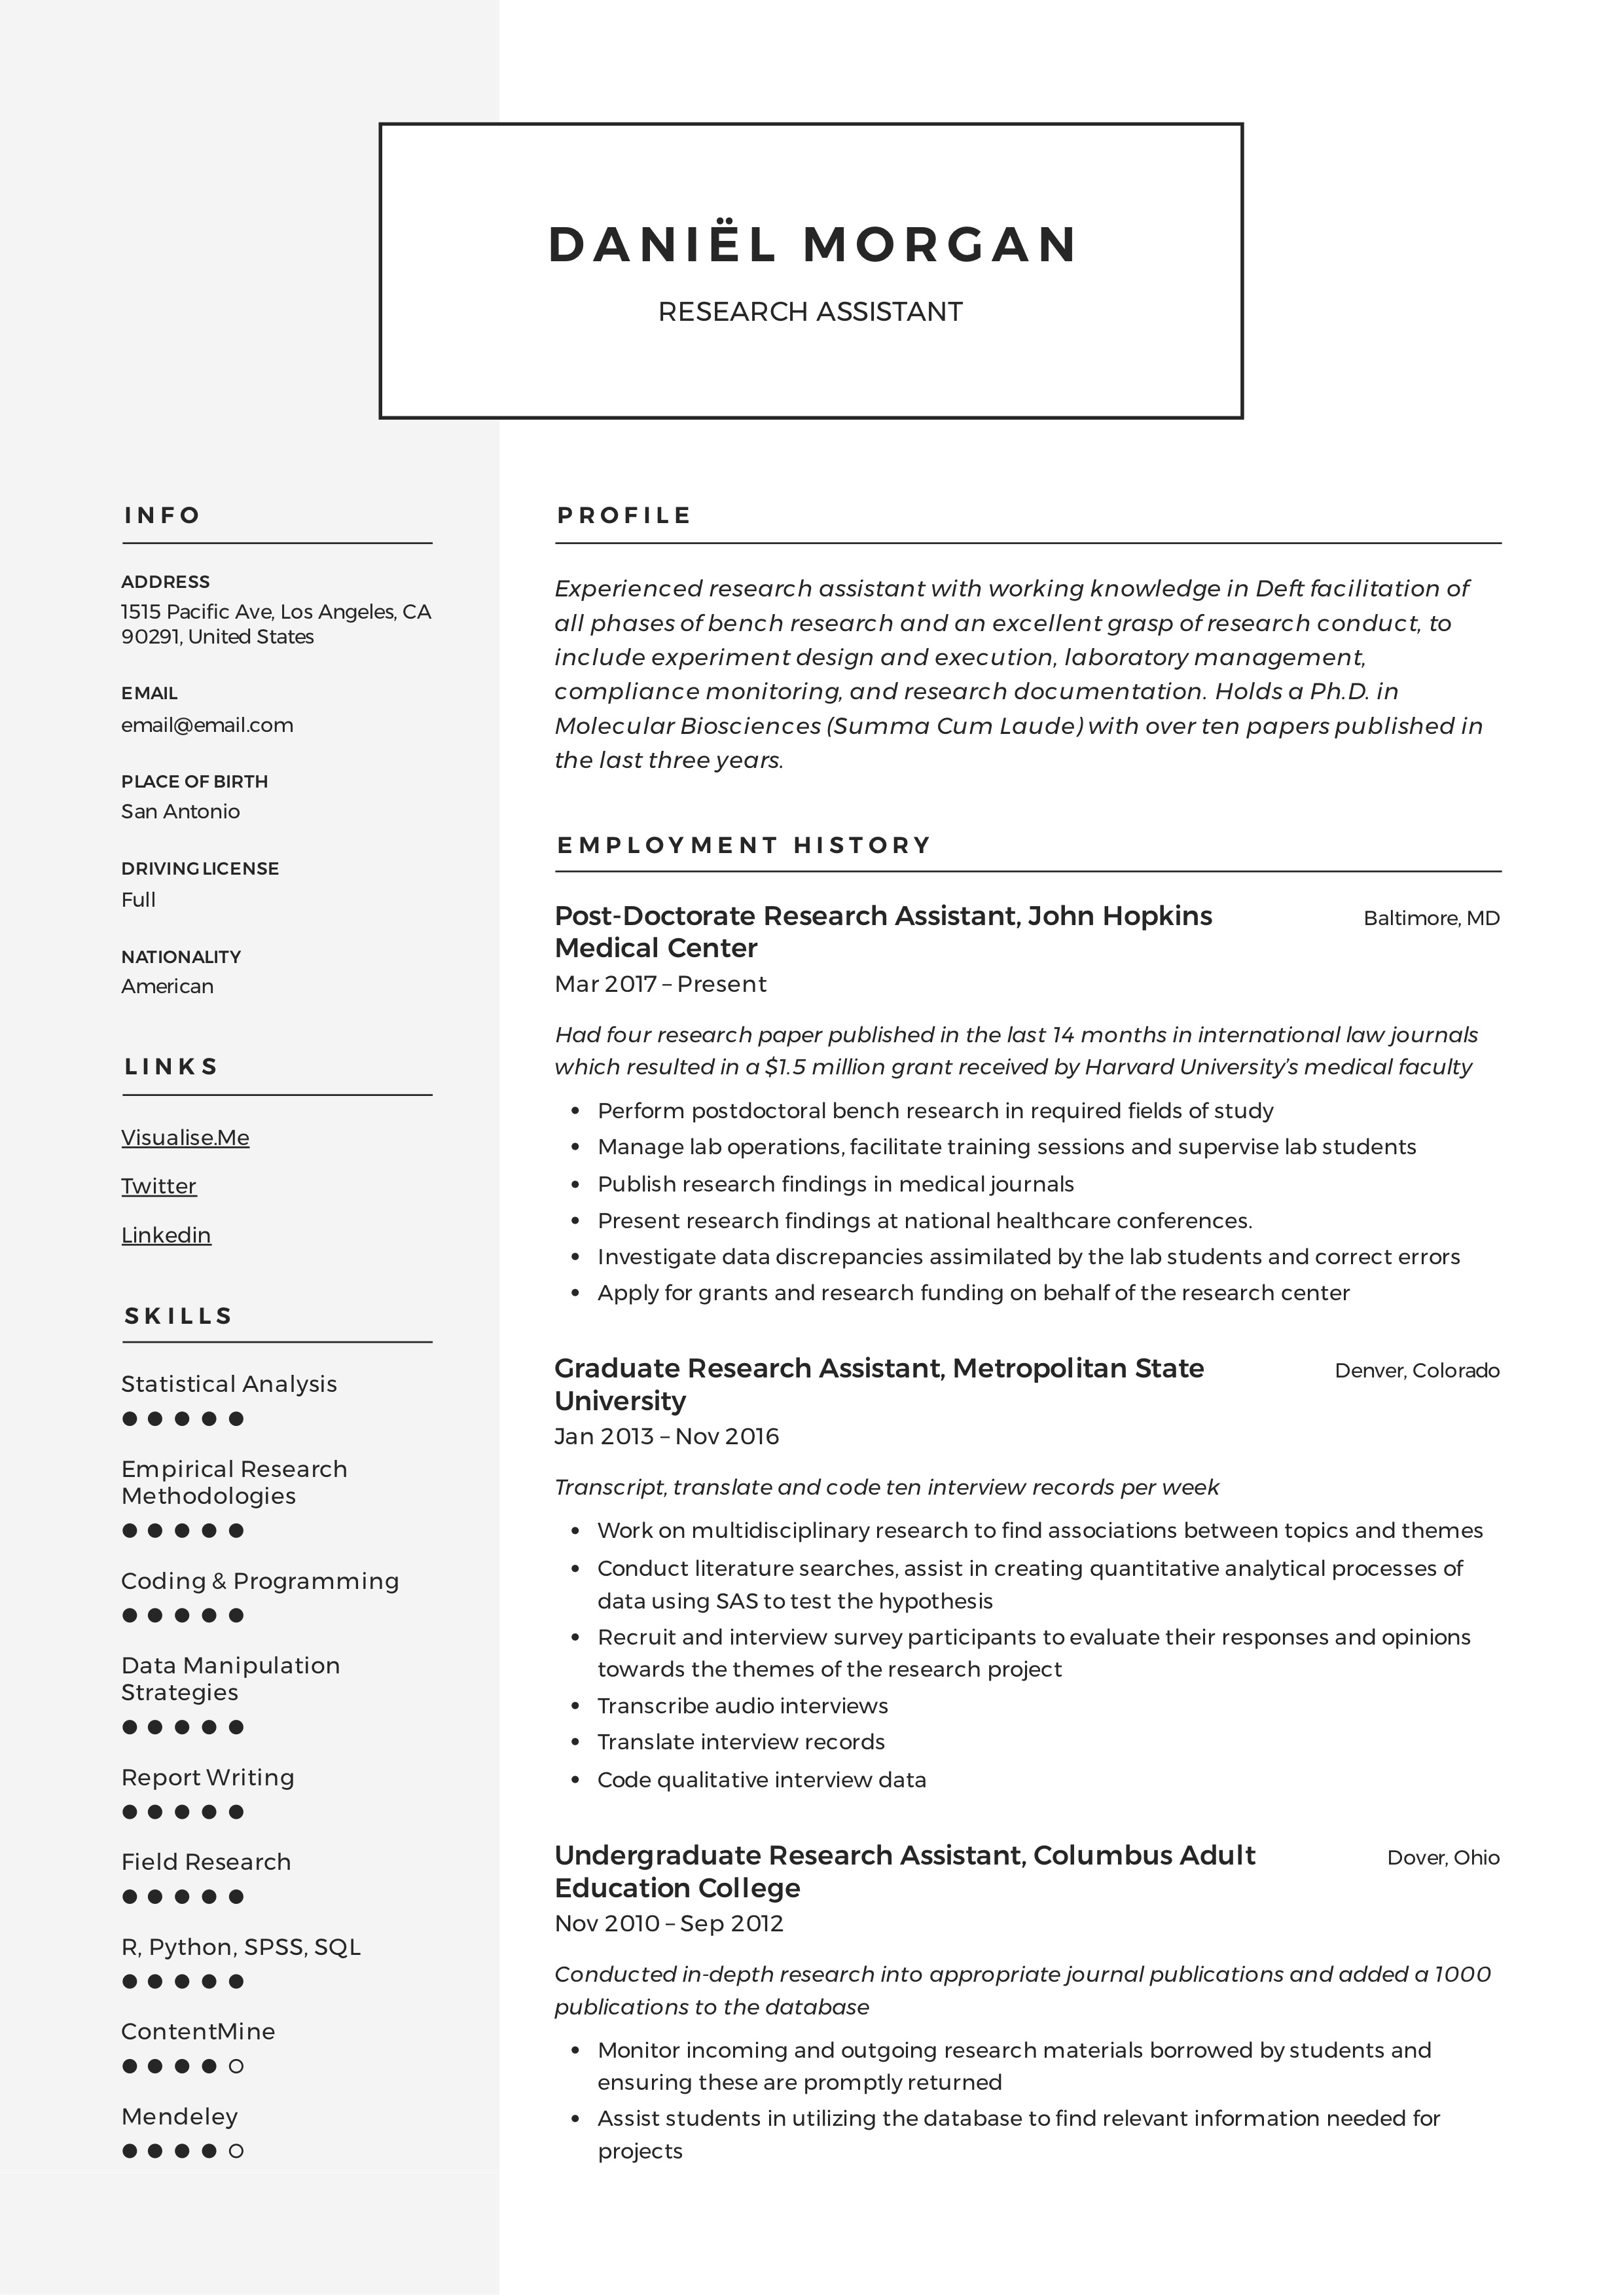 Research Assistant Resume Writing Guide 12 Resume Examples